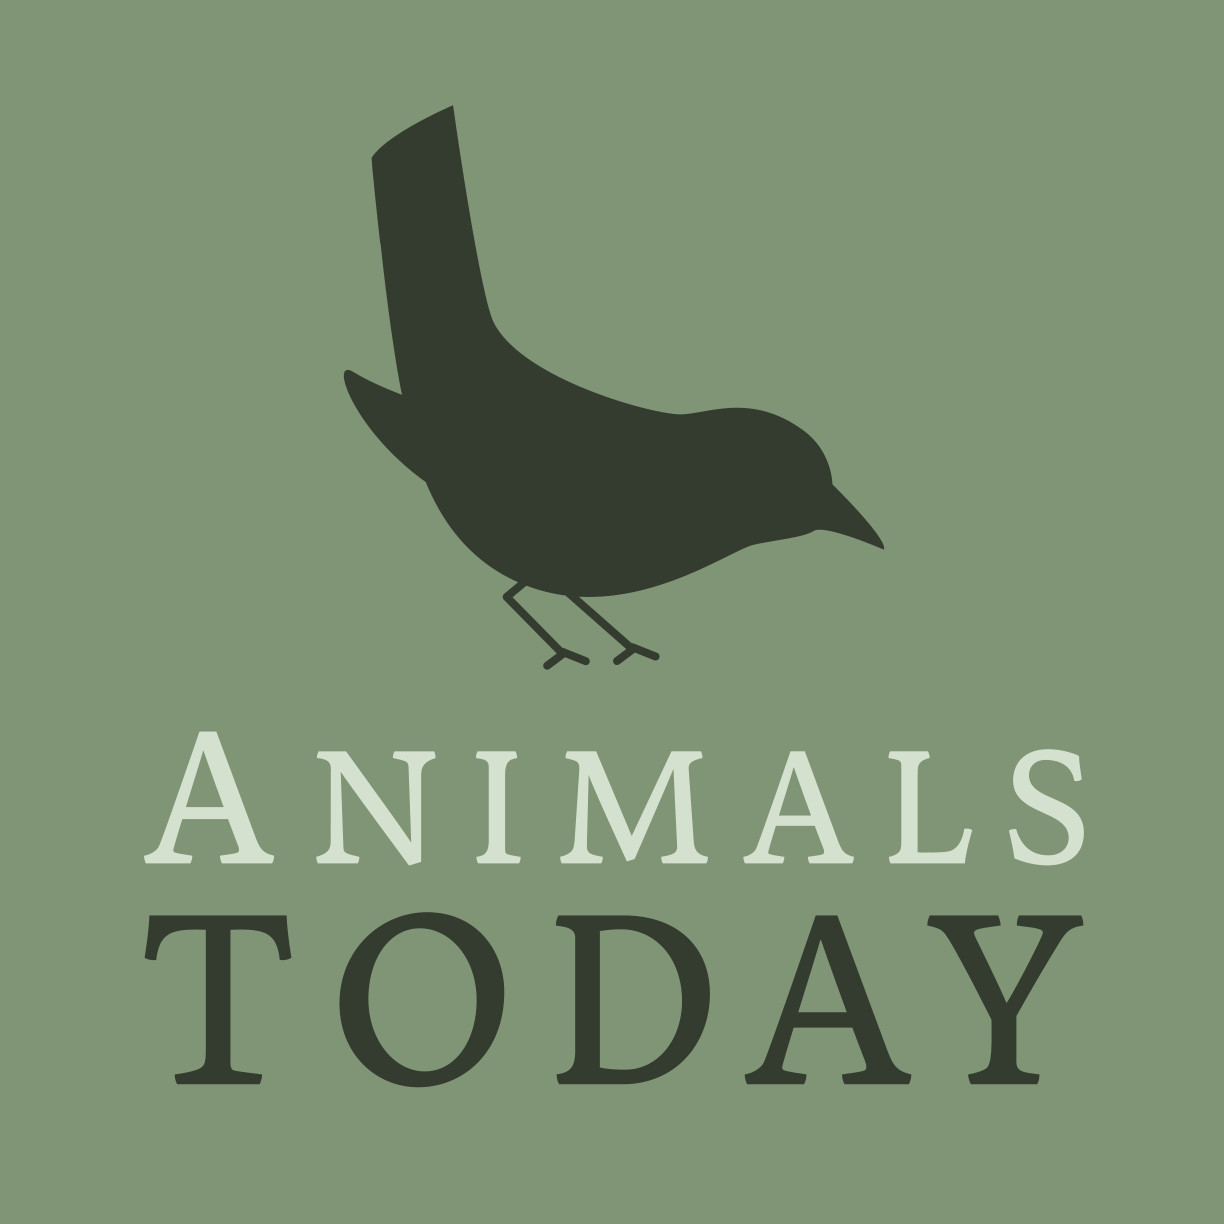 (c) Animalstoday.nl